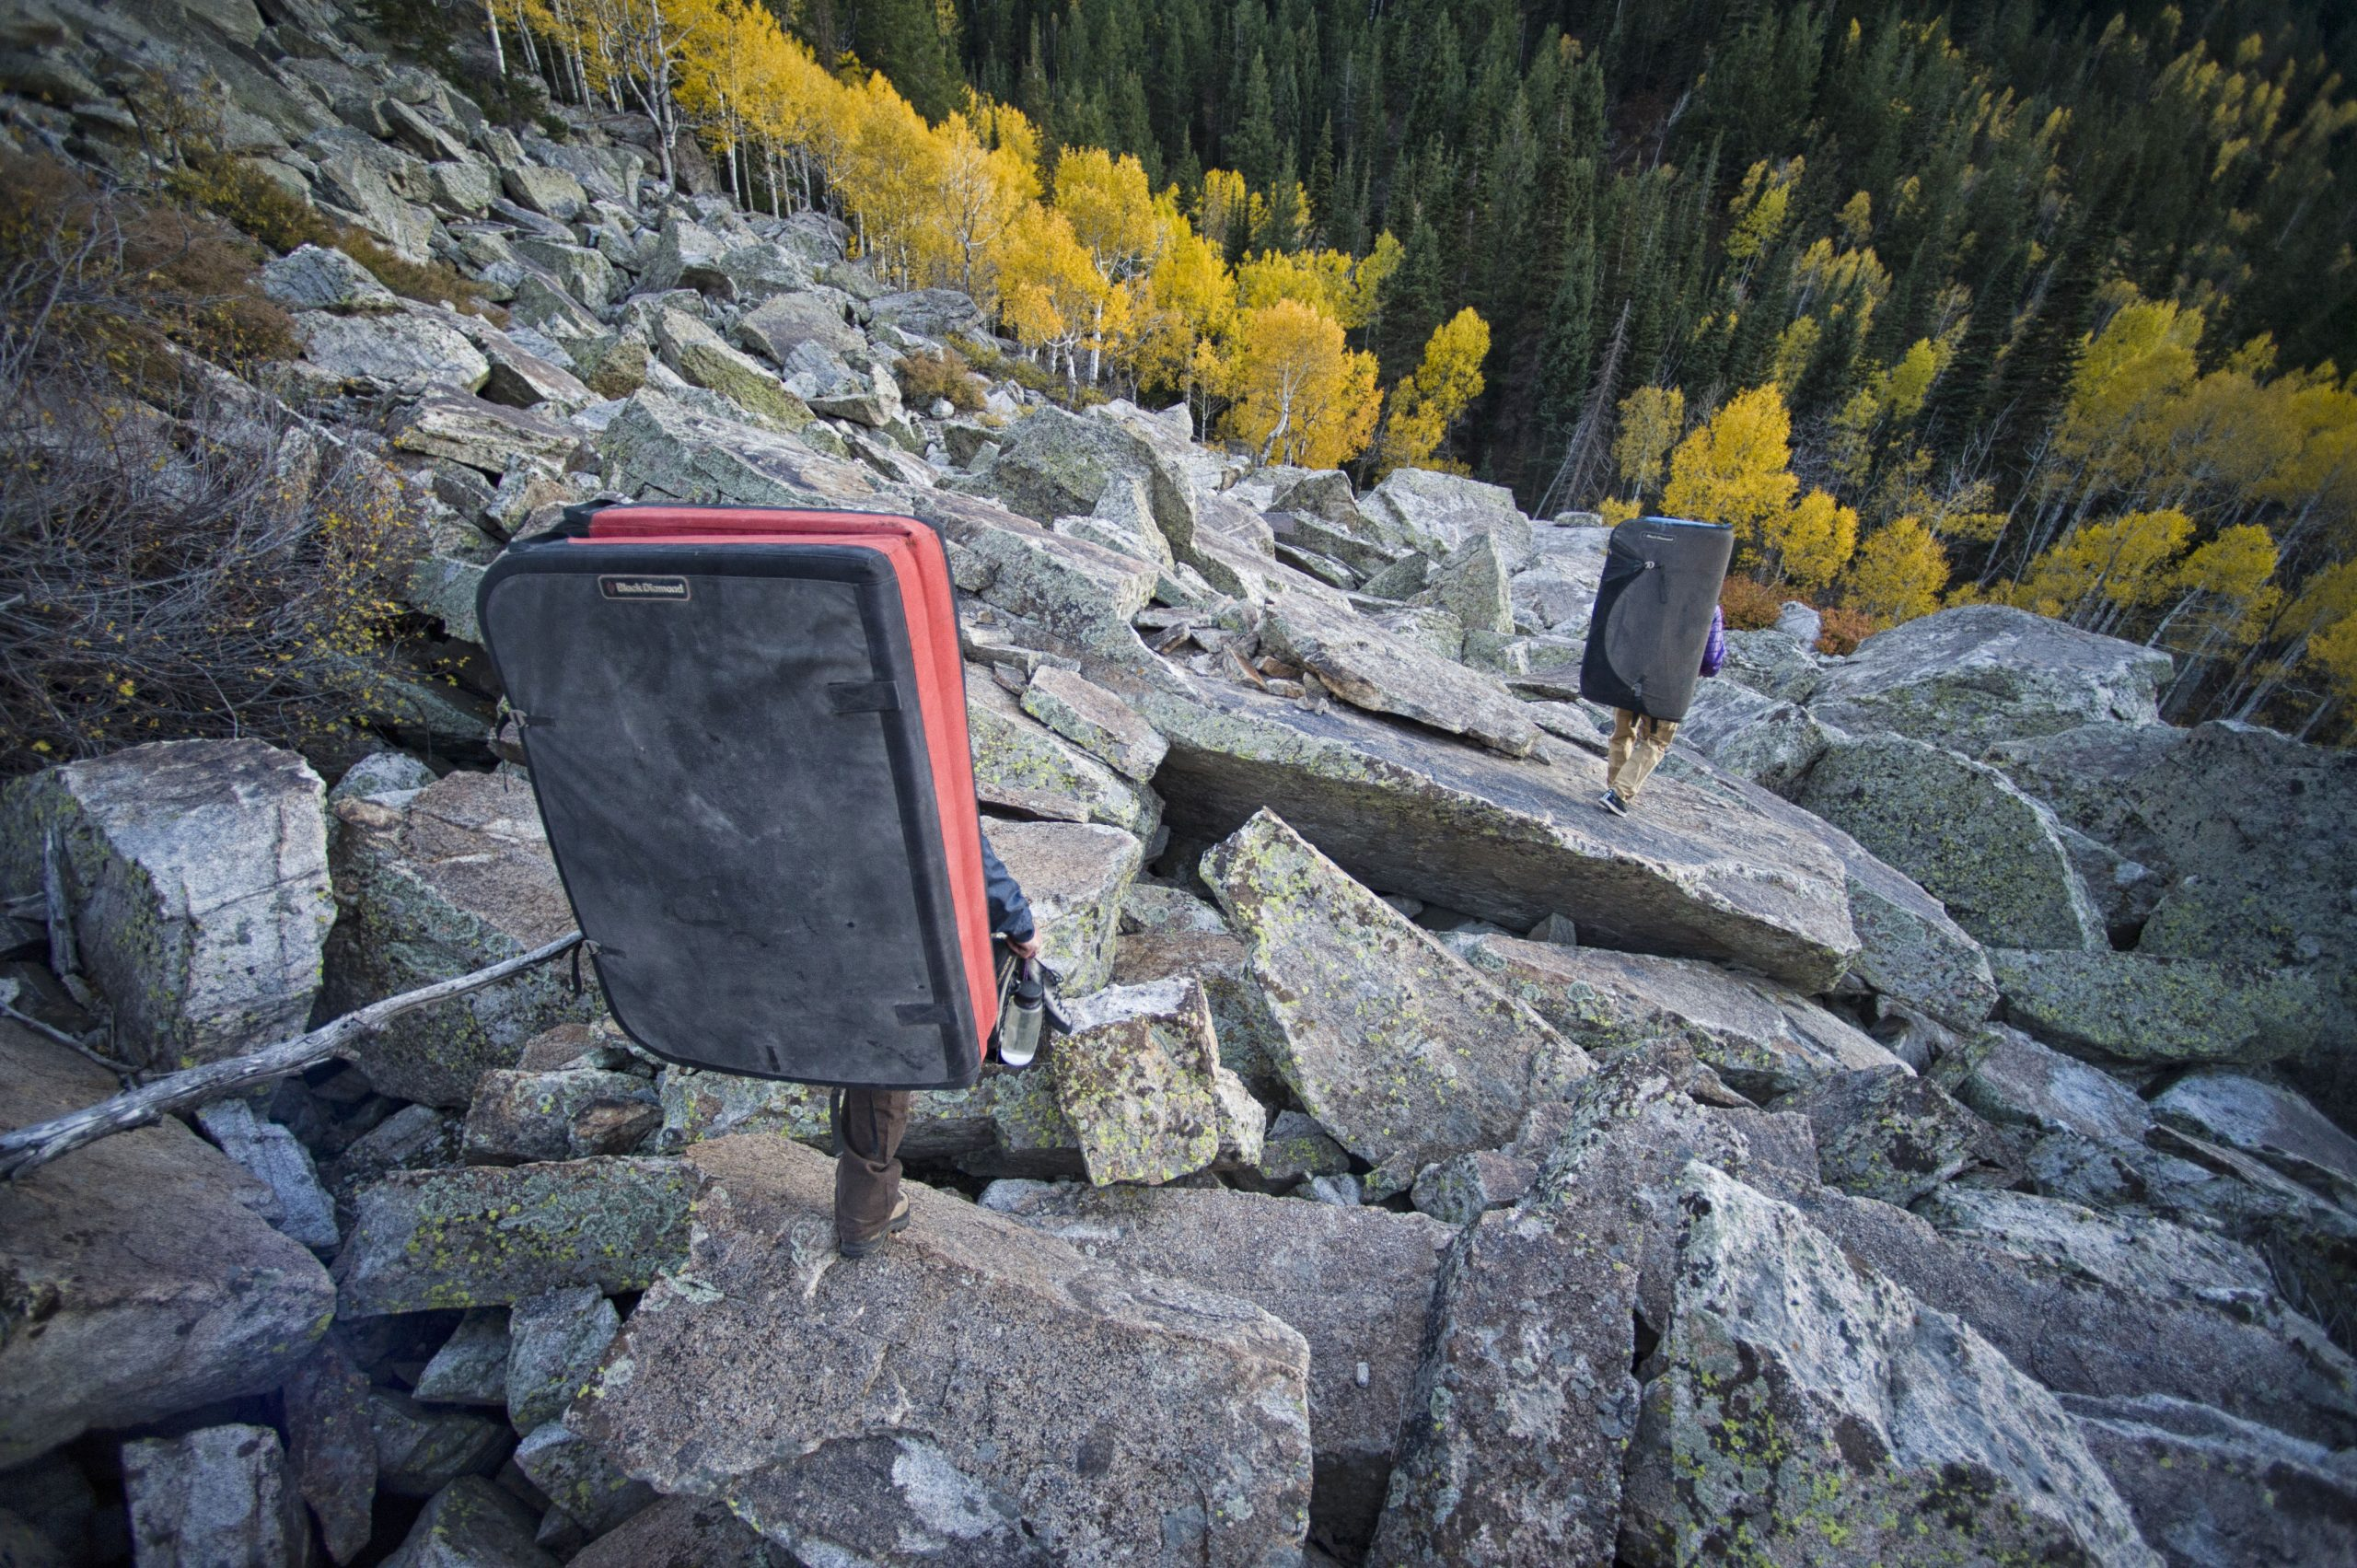 Two athletes hiking the wasatch mountains with climbing crash pads